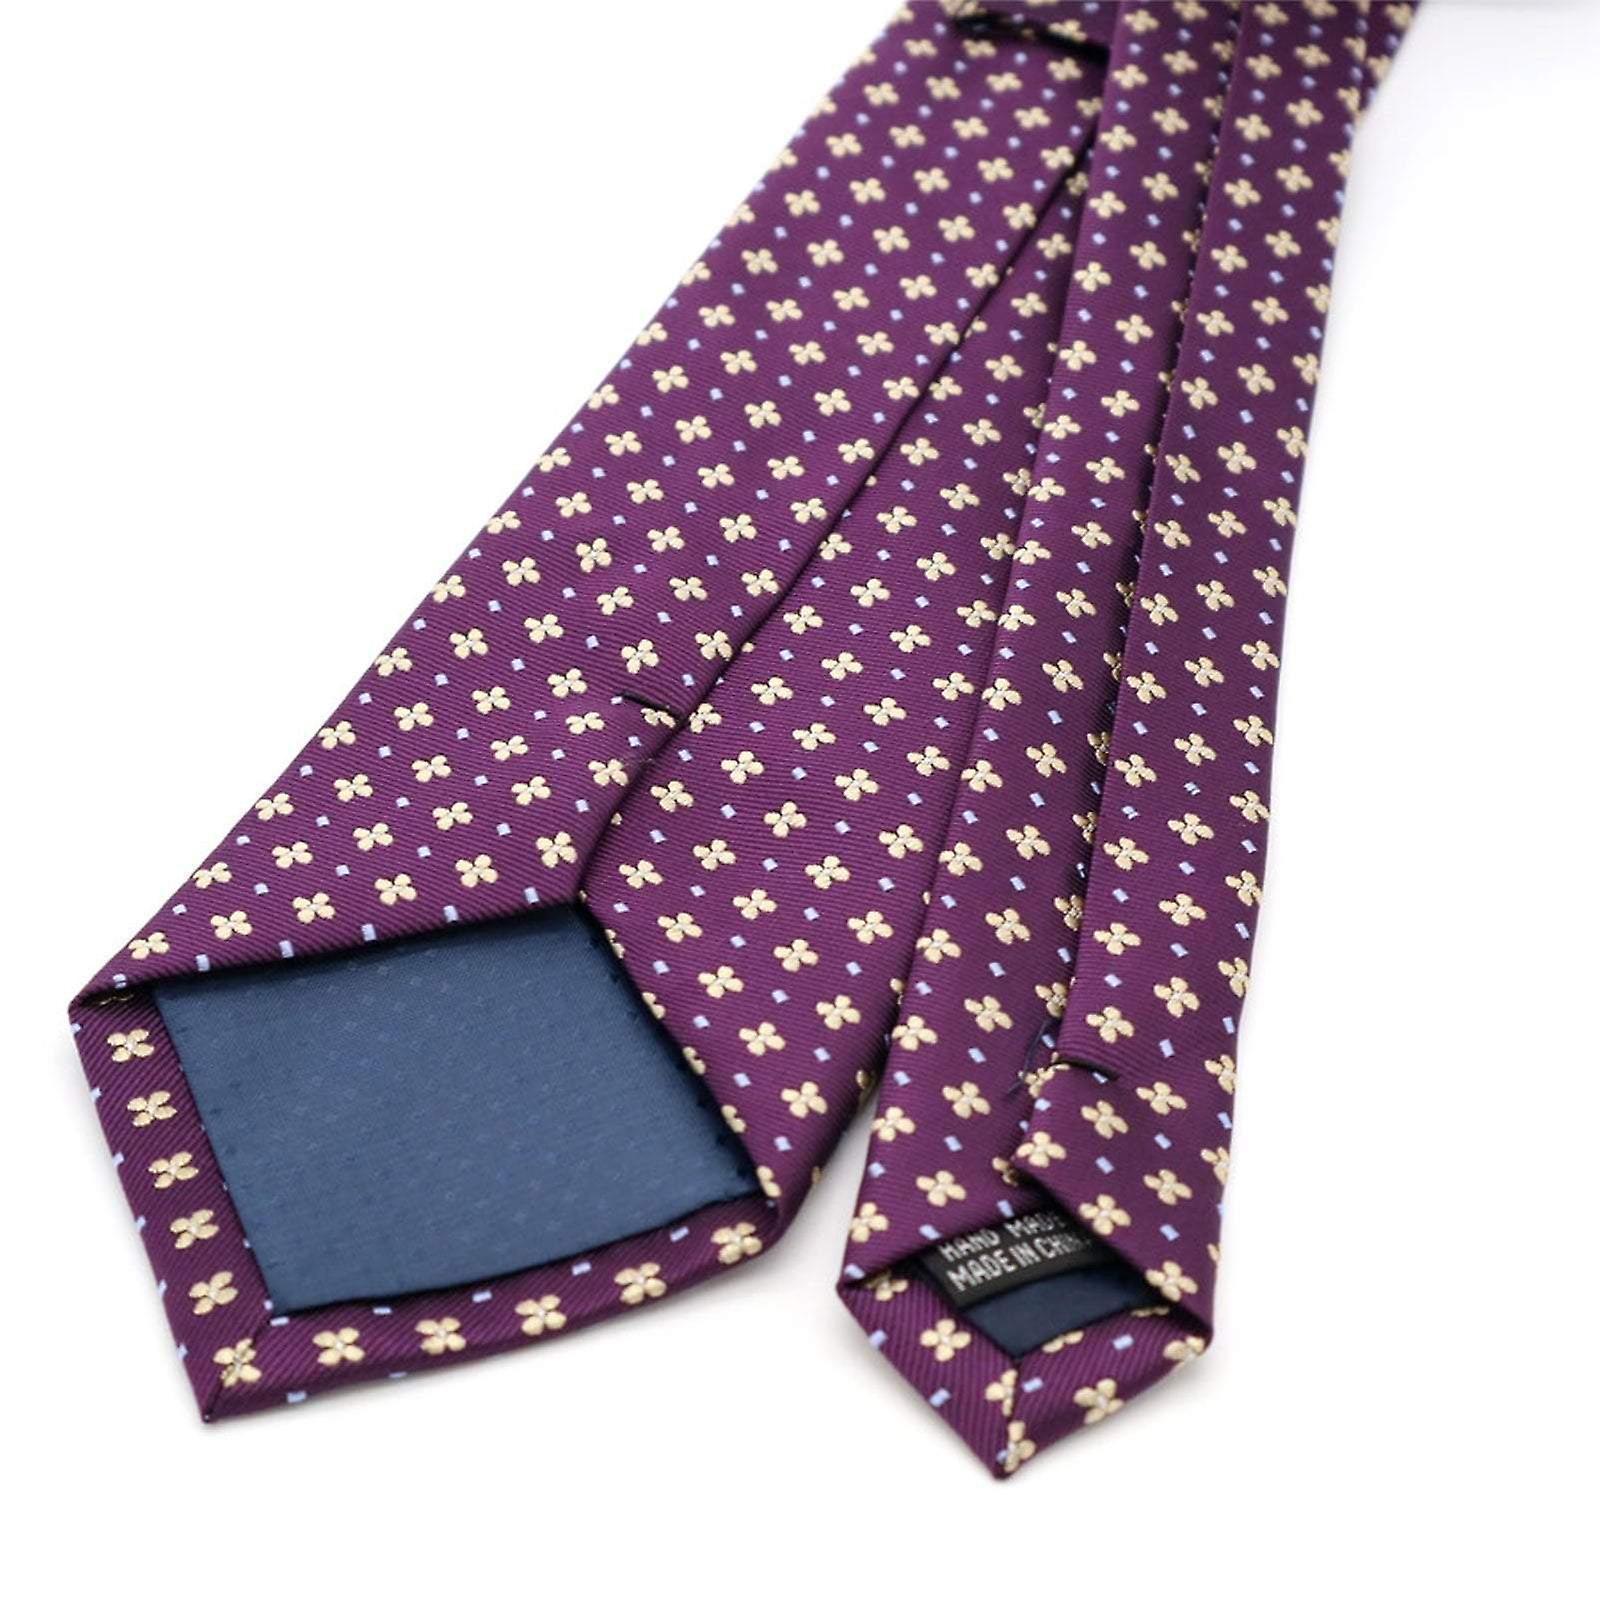 Purple & yellow floral pattern pocket square & necktie